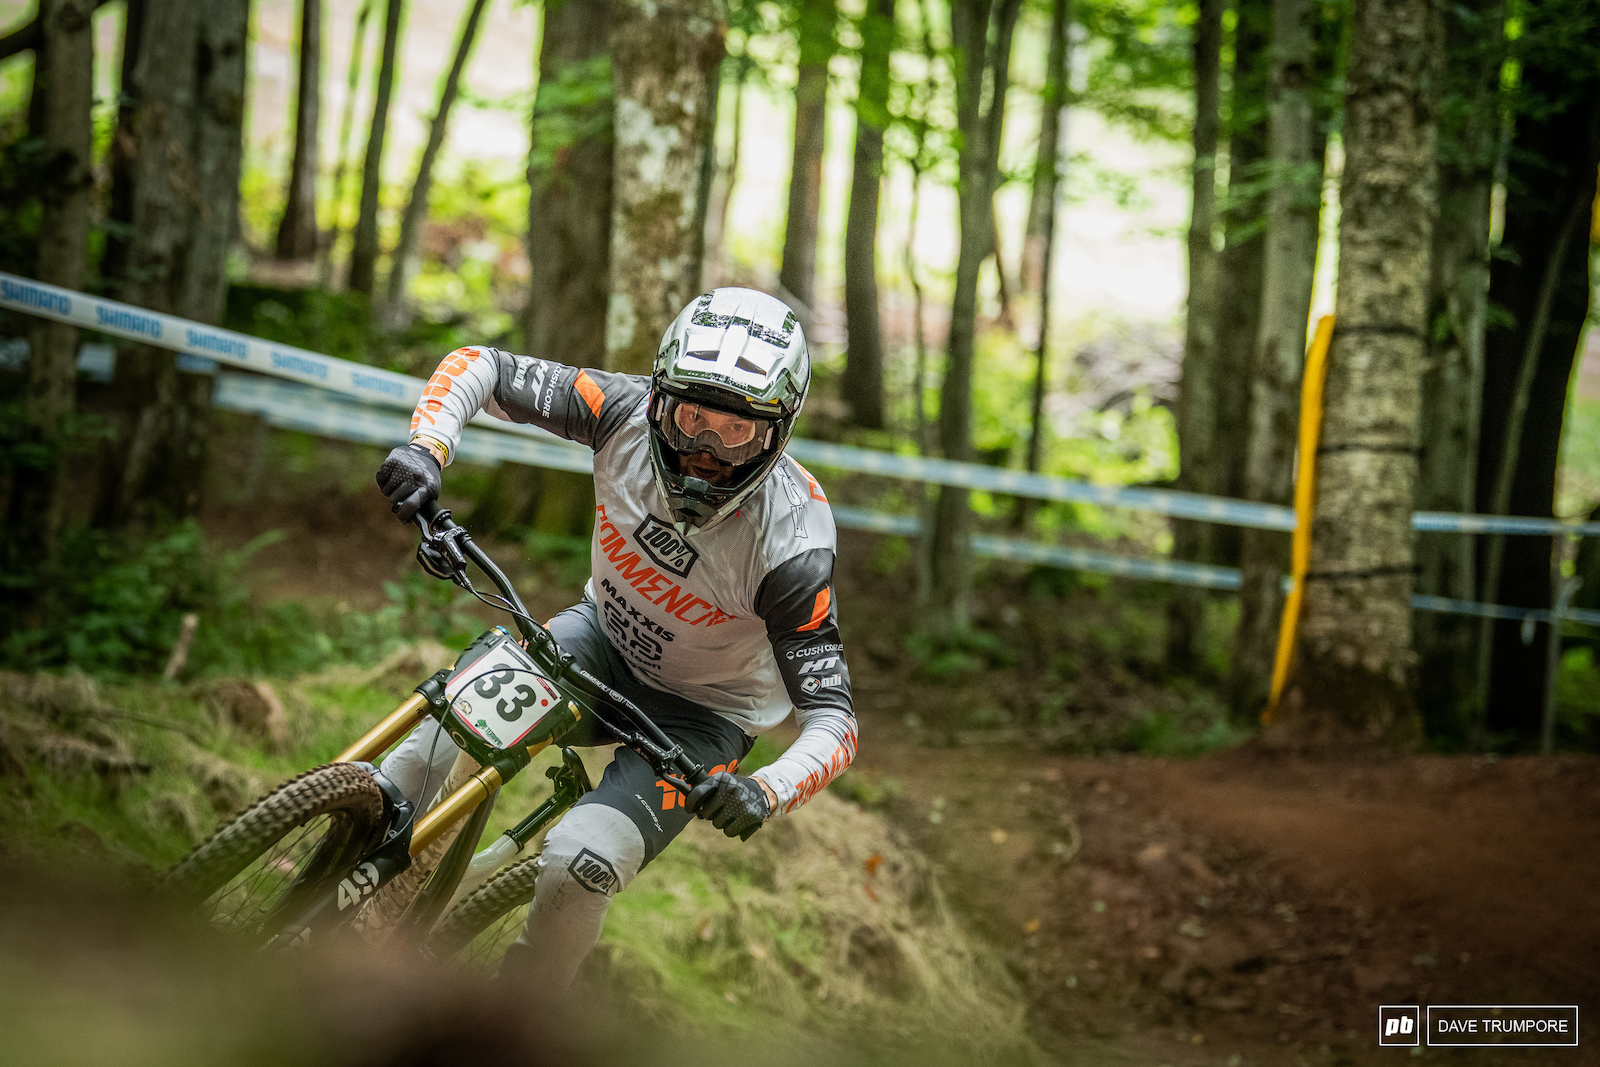 Thomas Estaque loves wet and muddy tracks so it is no surprise to see him up to place in the slick woods